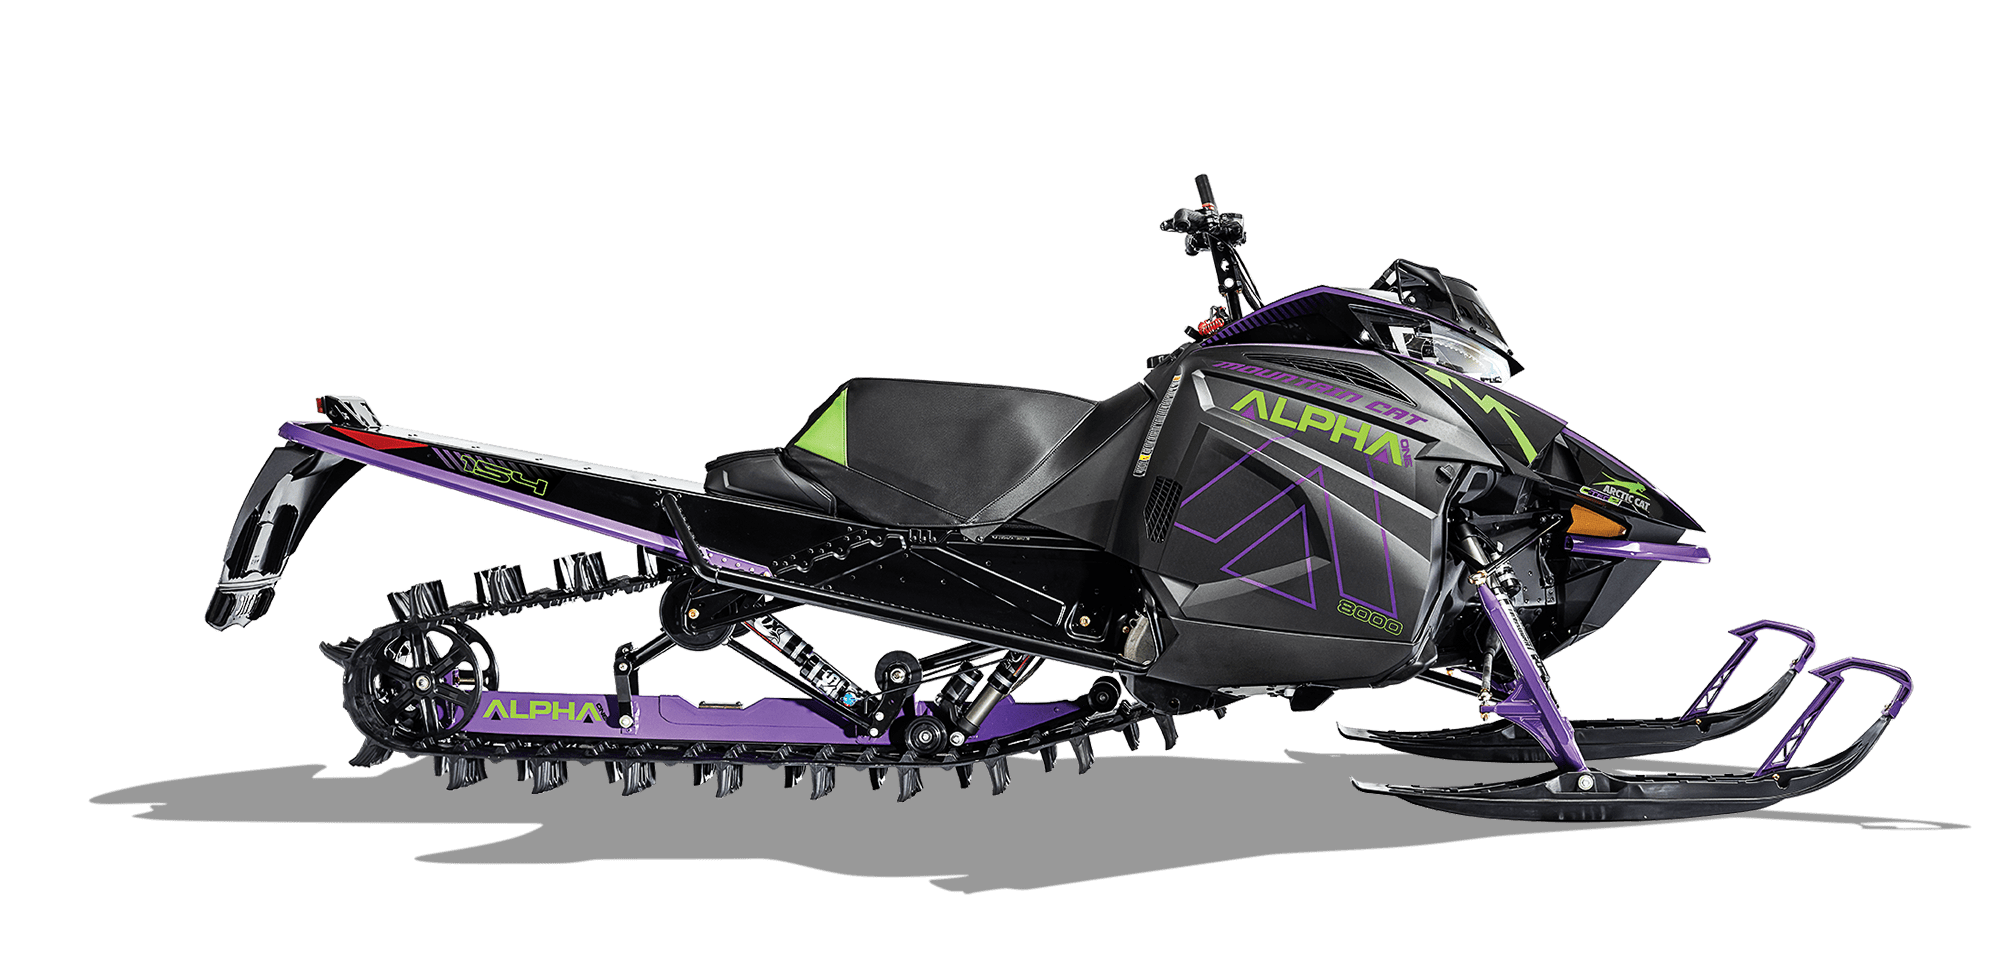 Снегоходы от Arctic cat: Mountain Cat, M8000 Sno Pro и Hardcore